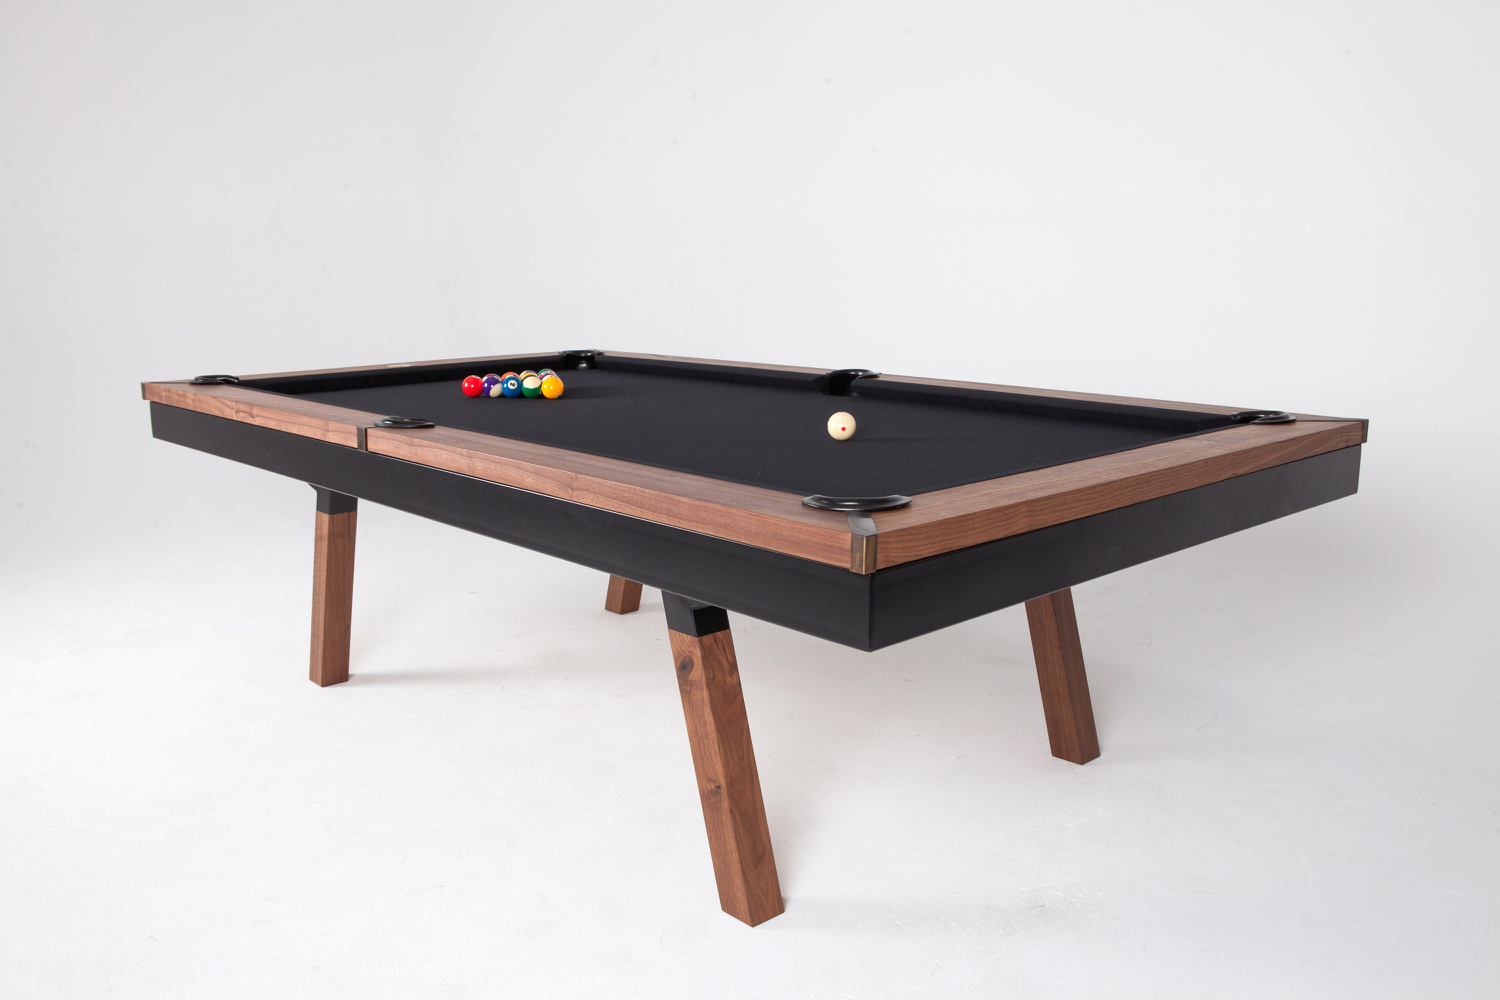 POOLTABLE-WEB - 3.jpg